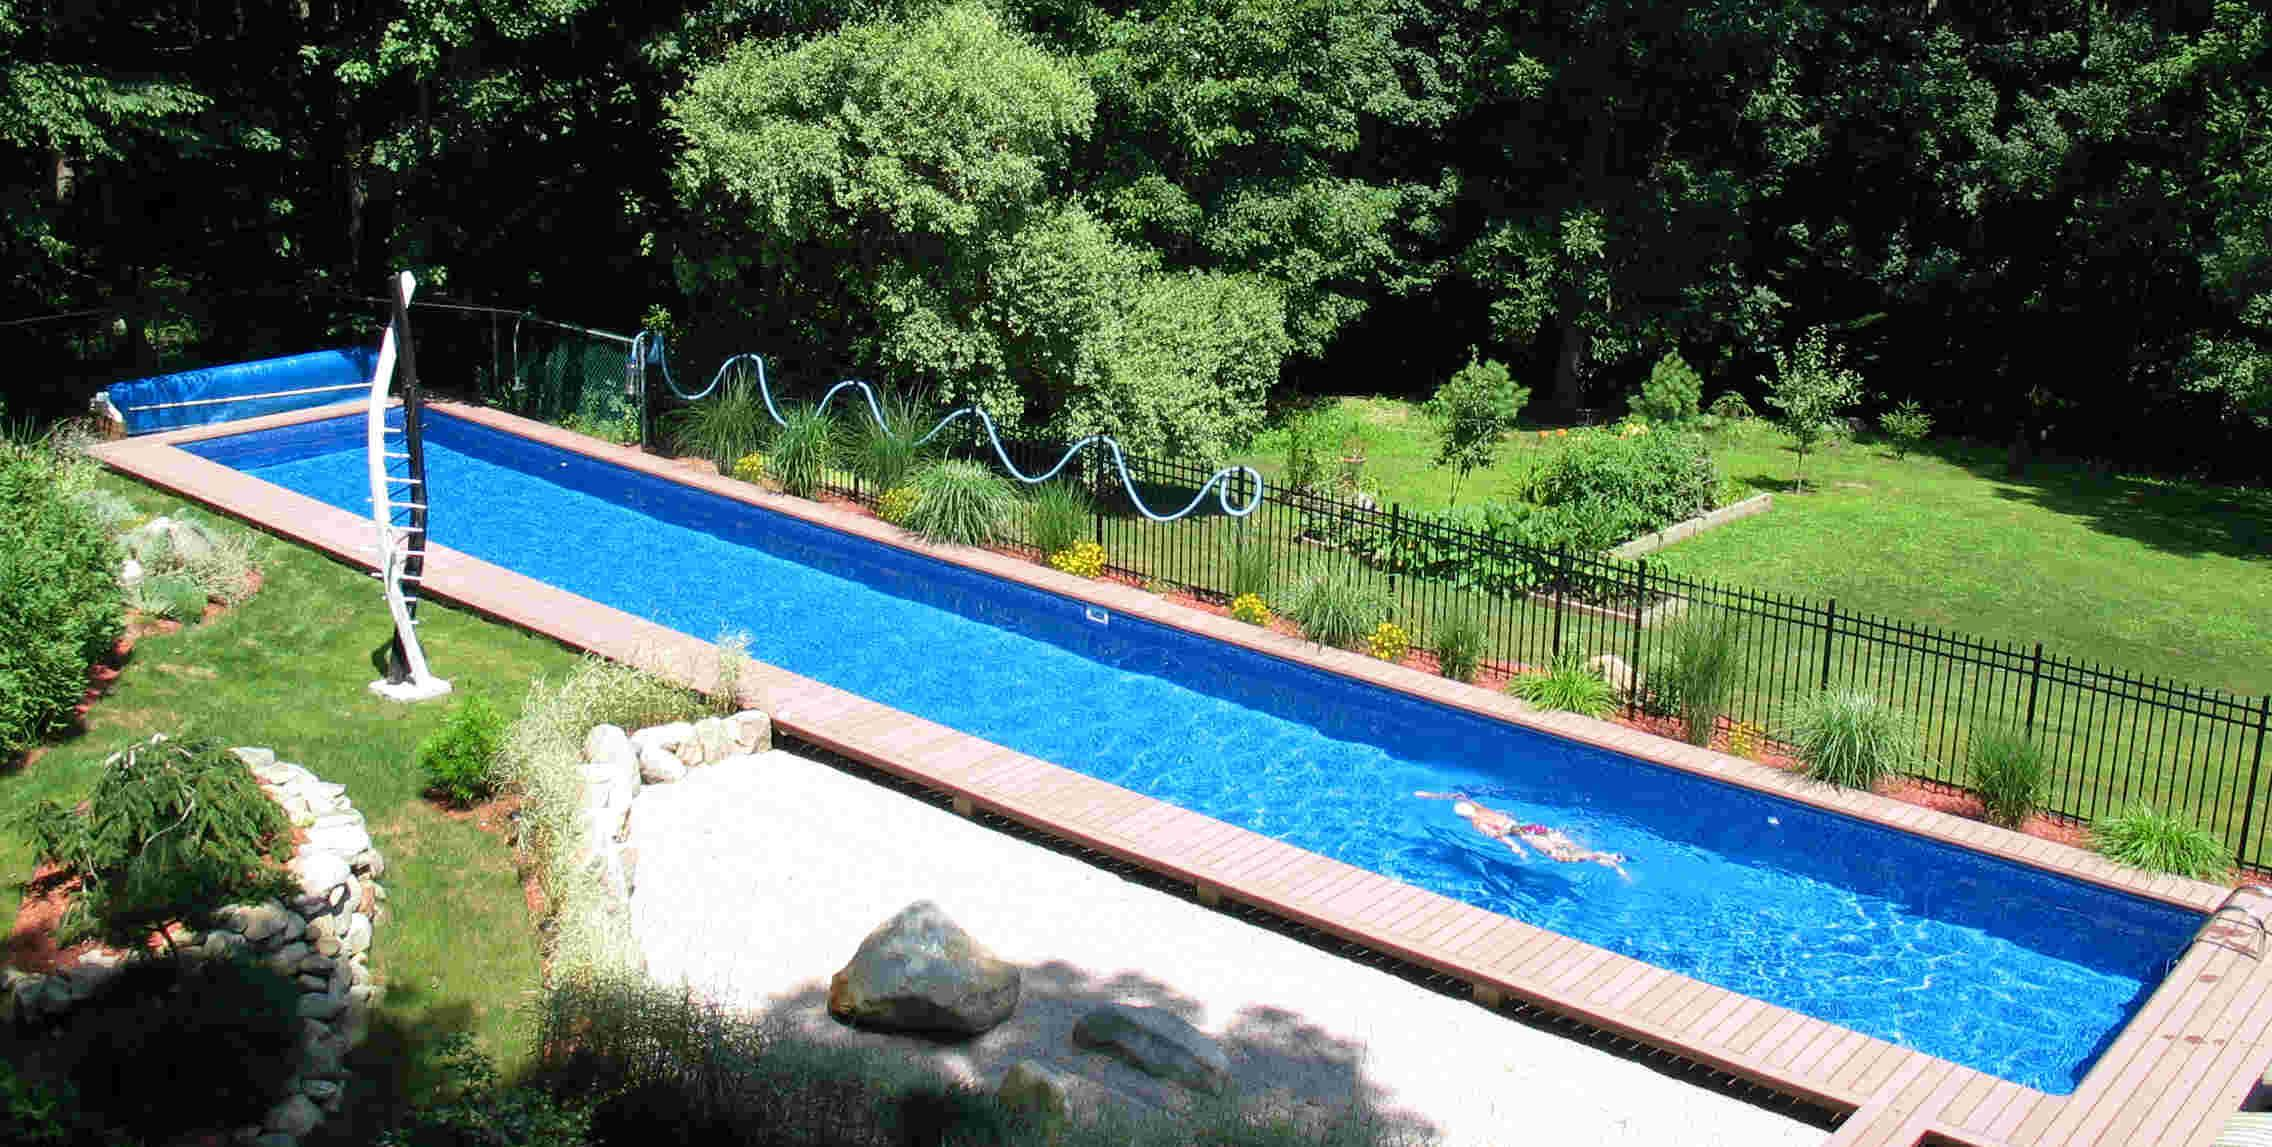 Rectangular Inground Pool Designs elegant inground swimming pool landscaping ideas just one of the